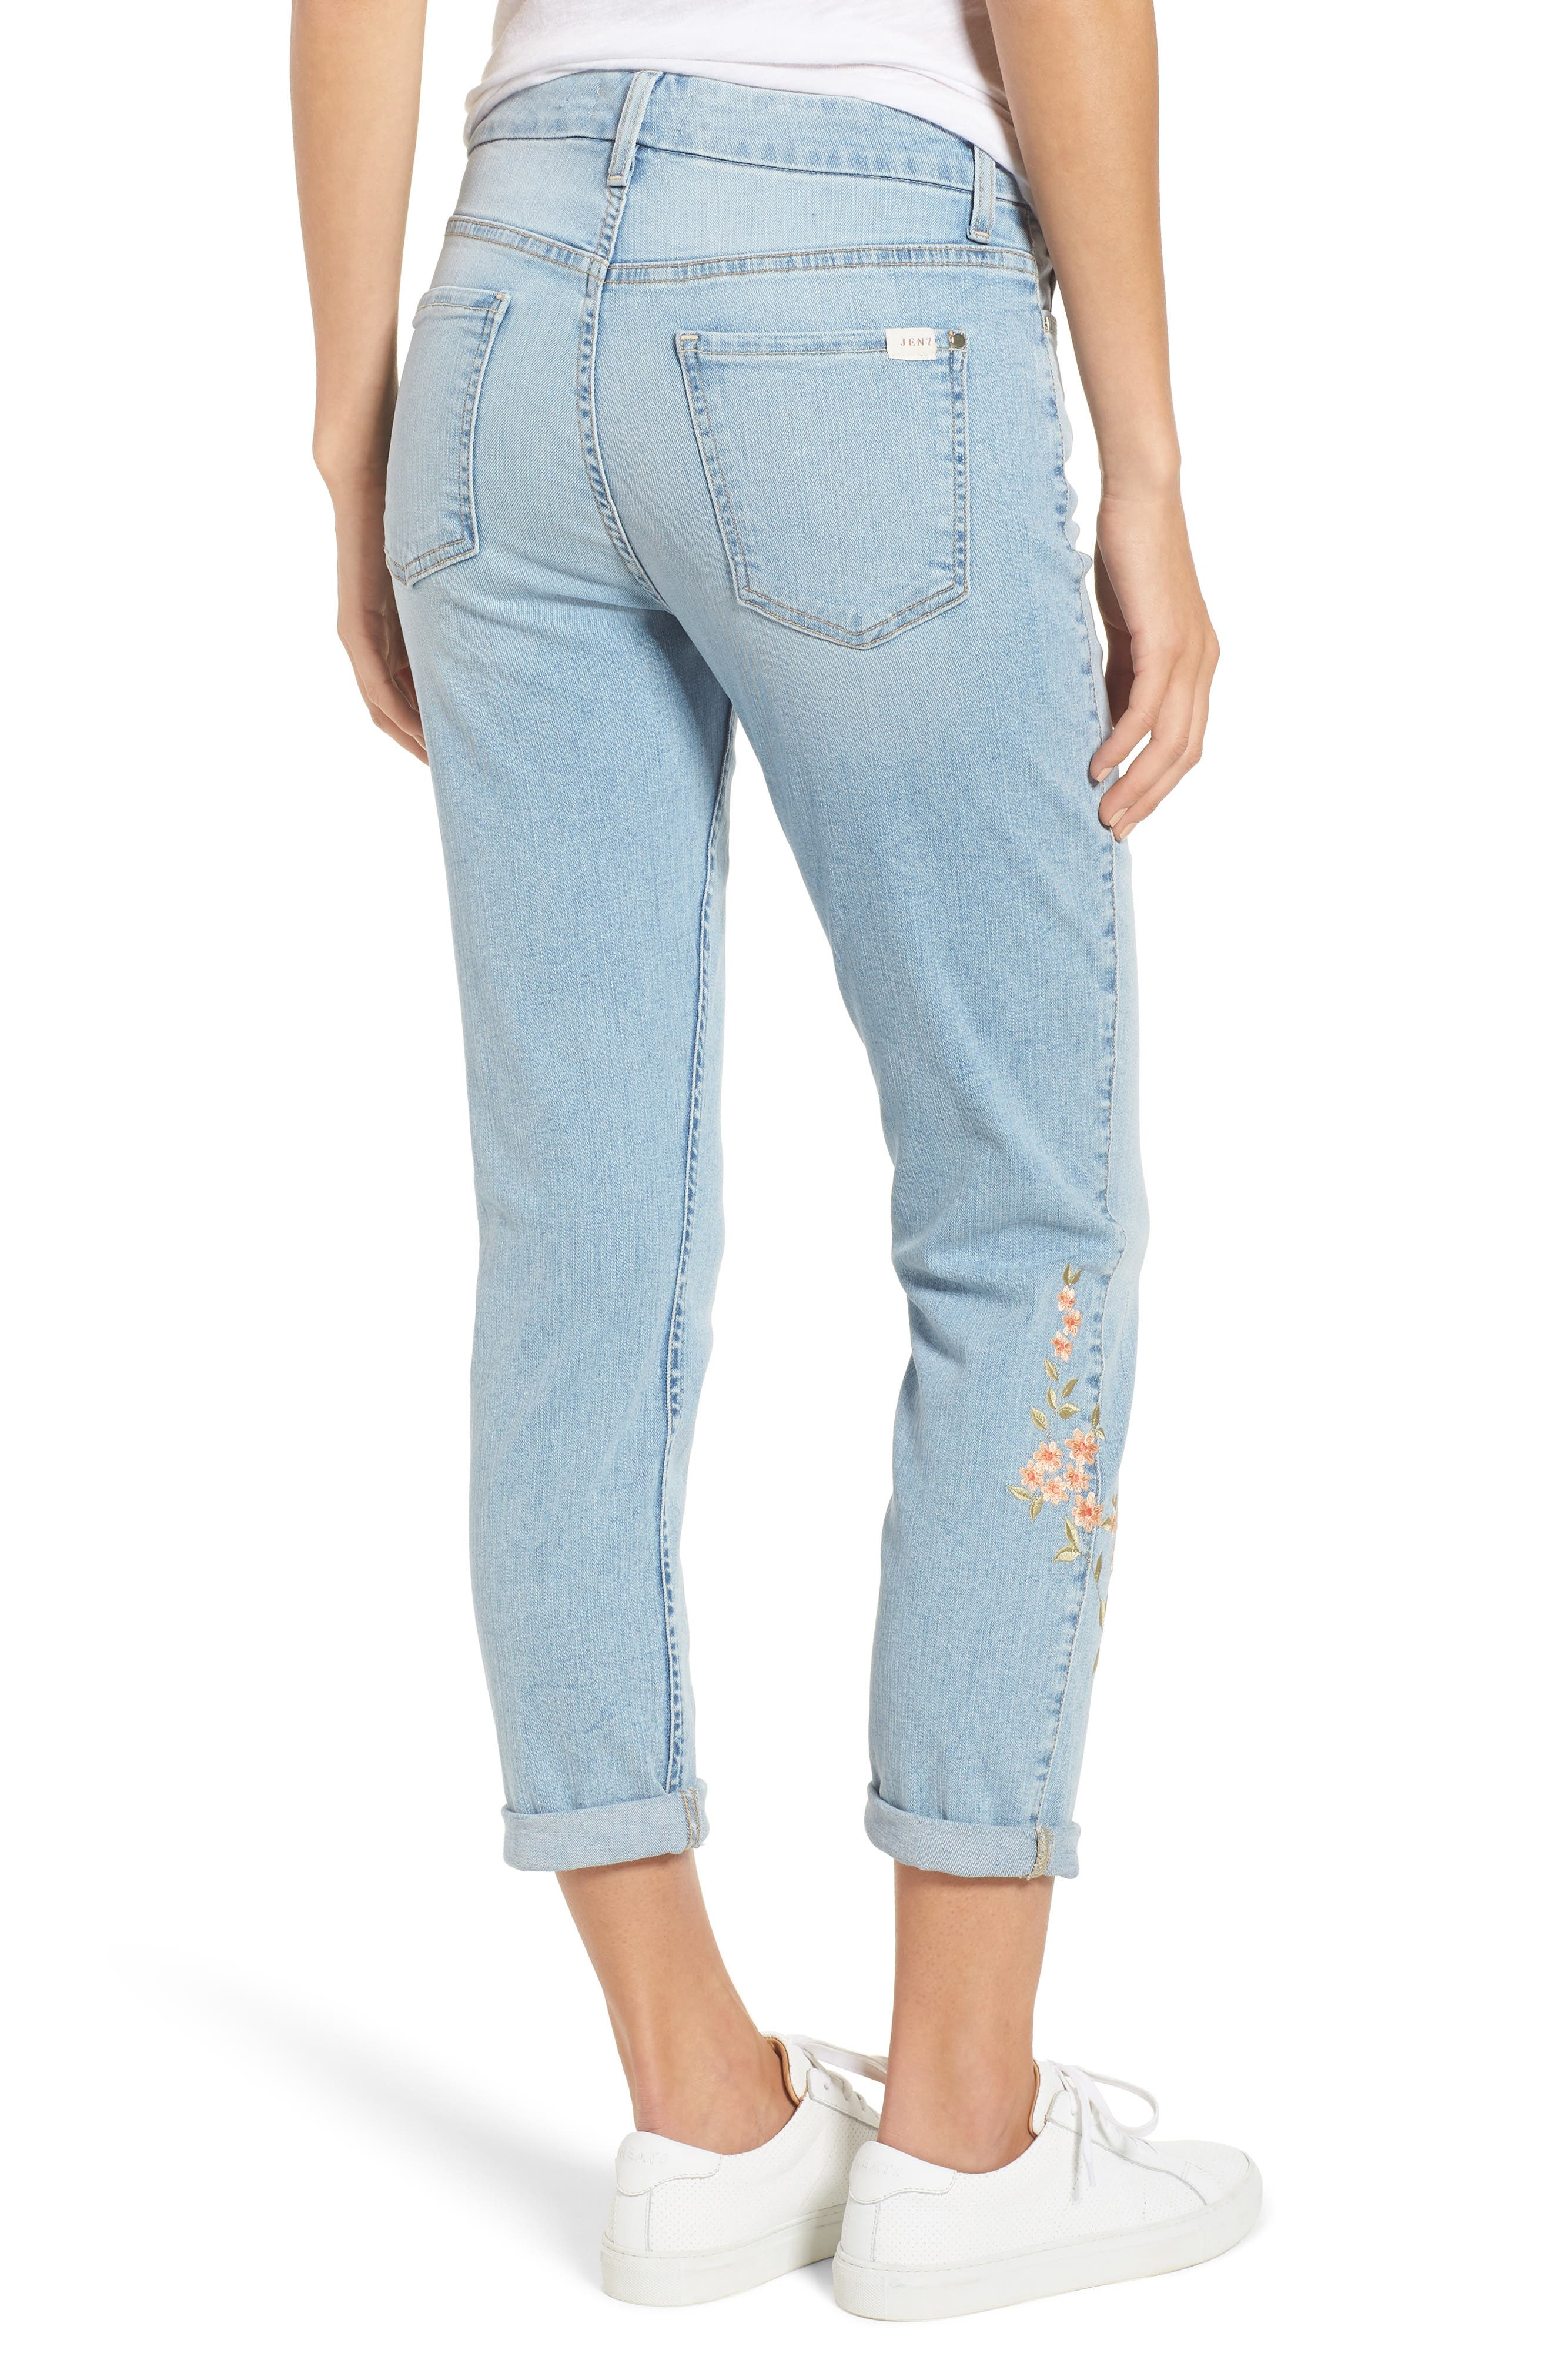 JEN7 BY 7 FOR ALL MANKIND, Embroidered Slim Boyfriend Jeans, Alternate thumbnail 2, color, RICHE TOUCH PLAYA VISTA